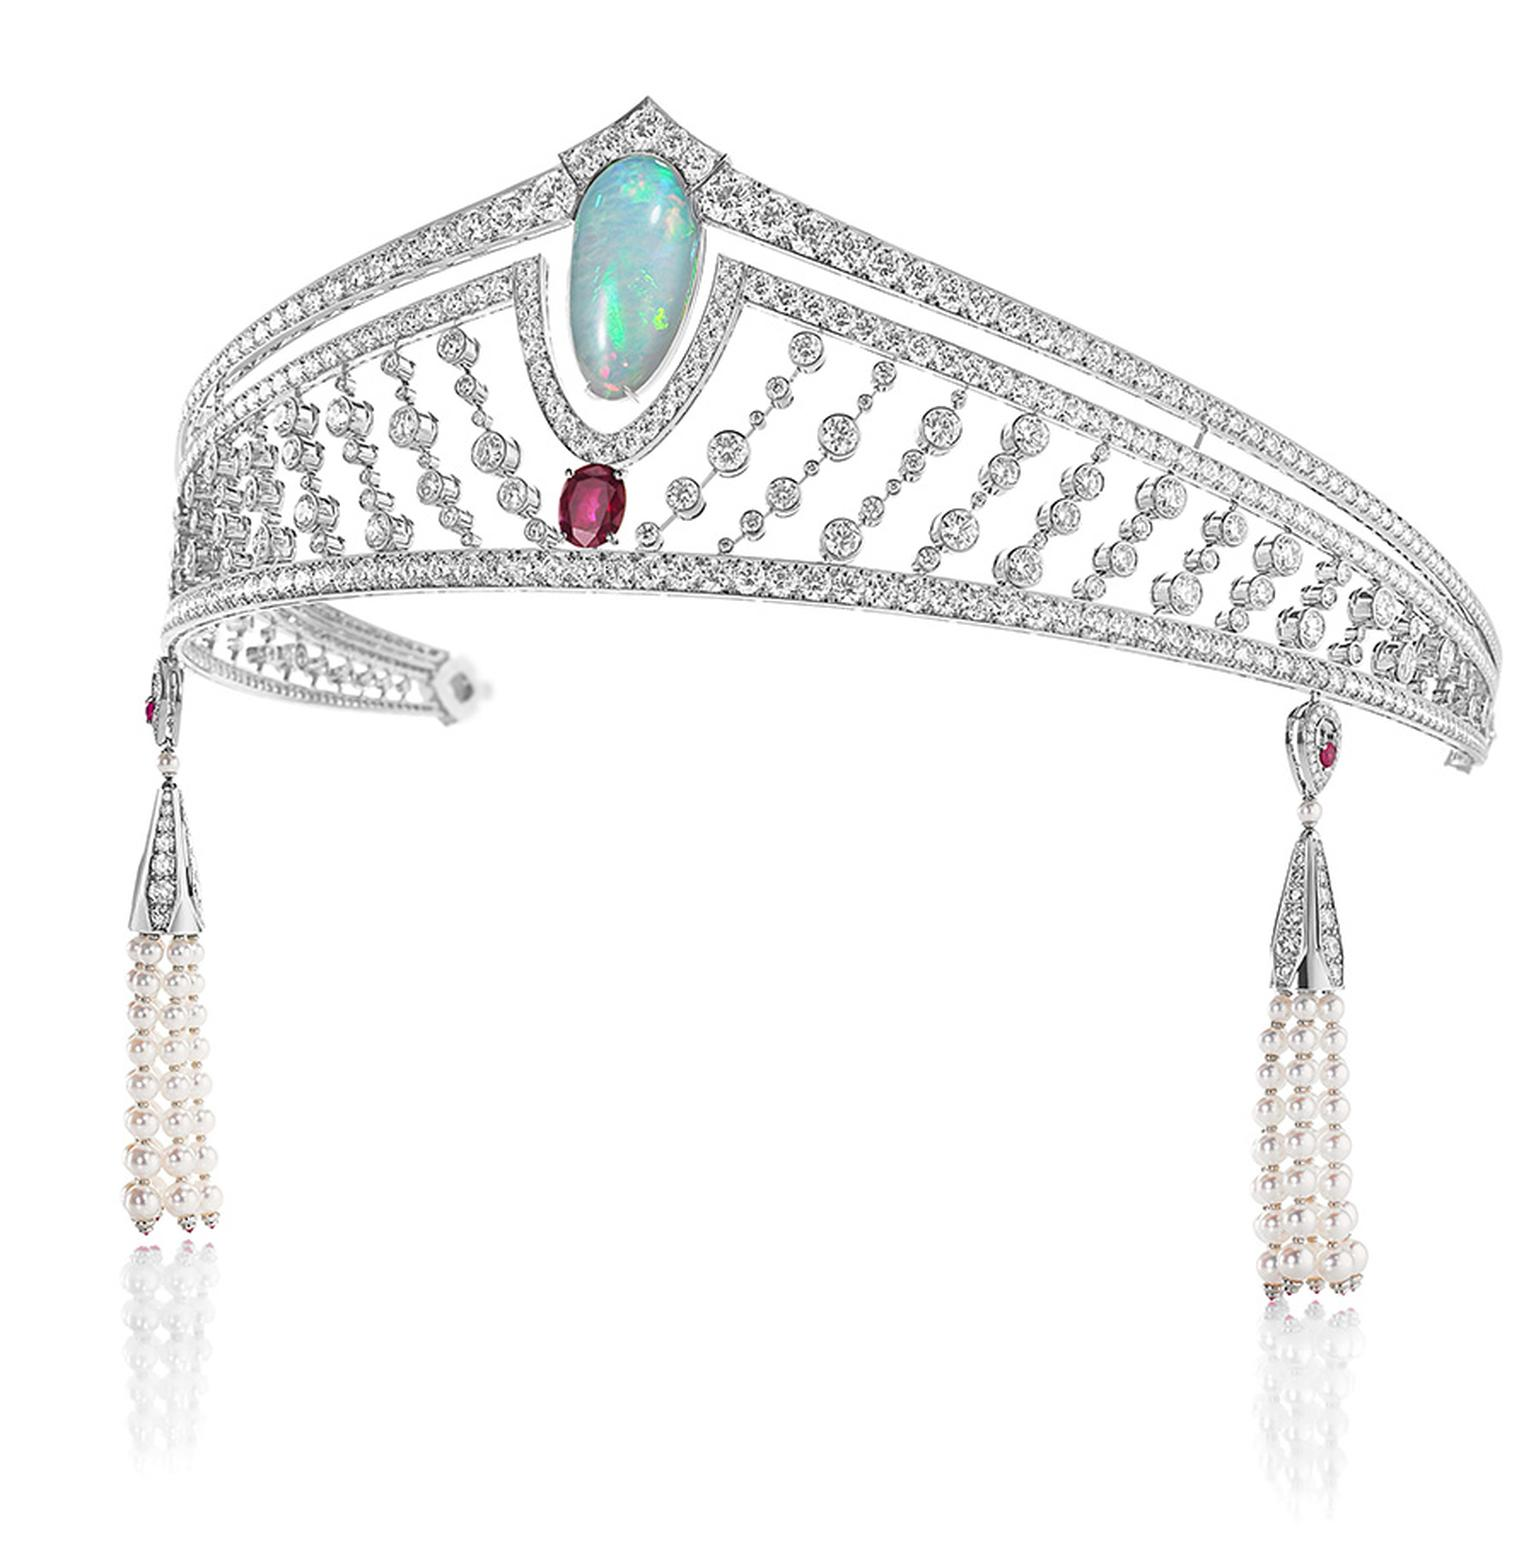 Chaumet-diademe2_6_photo